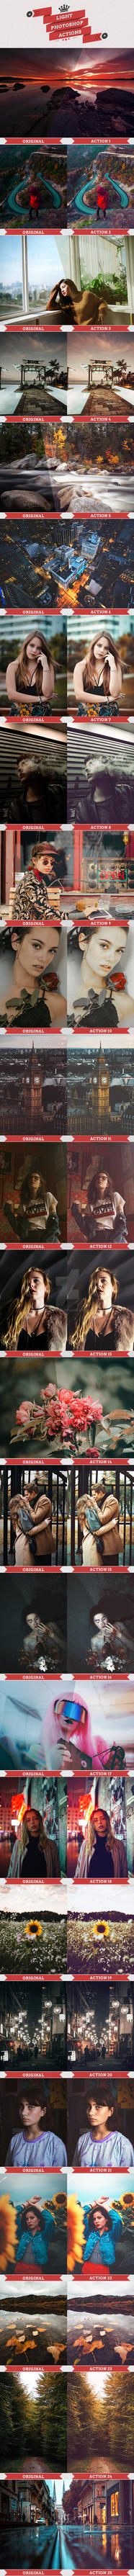 Light Photoshop Actions by interesive